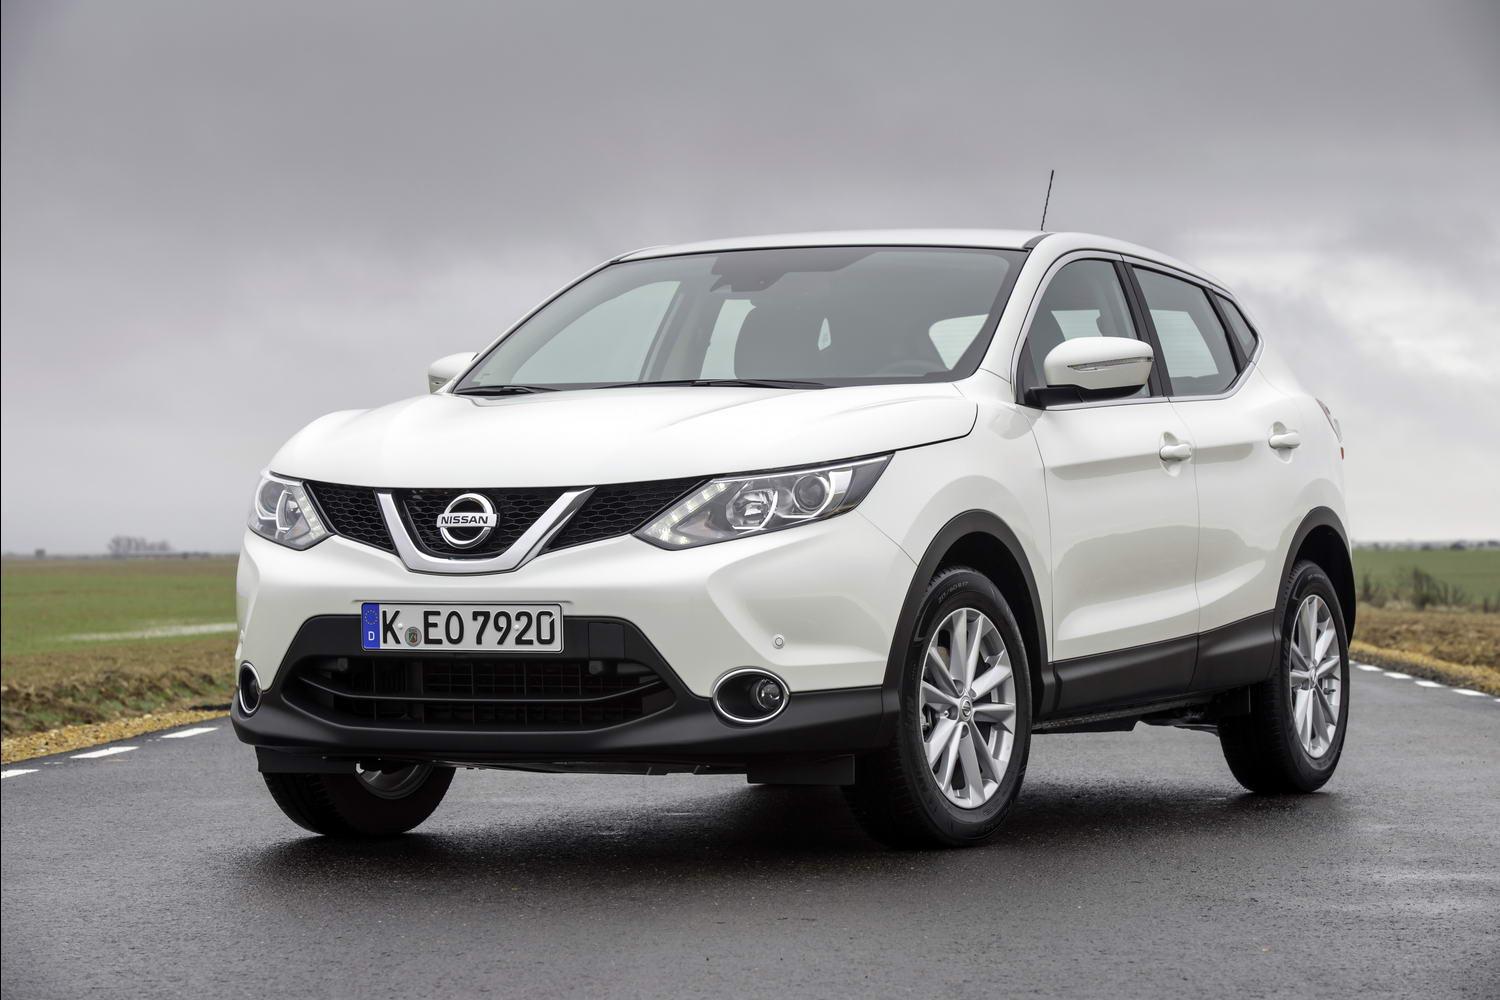 Nissan Qashqai Mk2 (2014-2021) used car buying guide | CompleteCar.ie